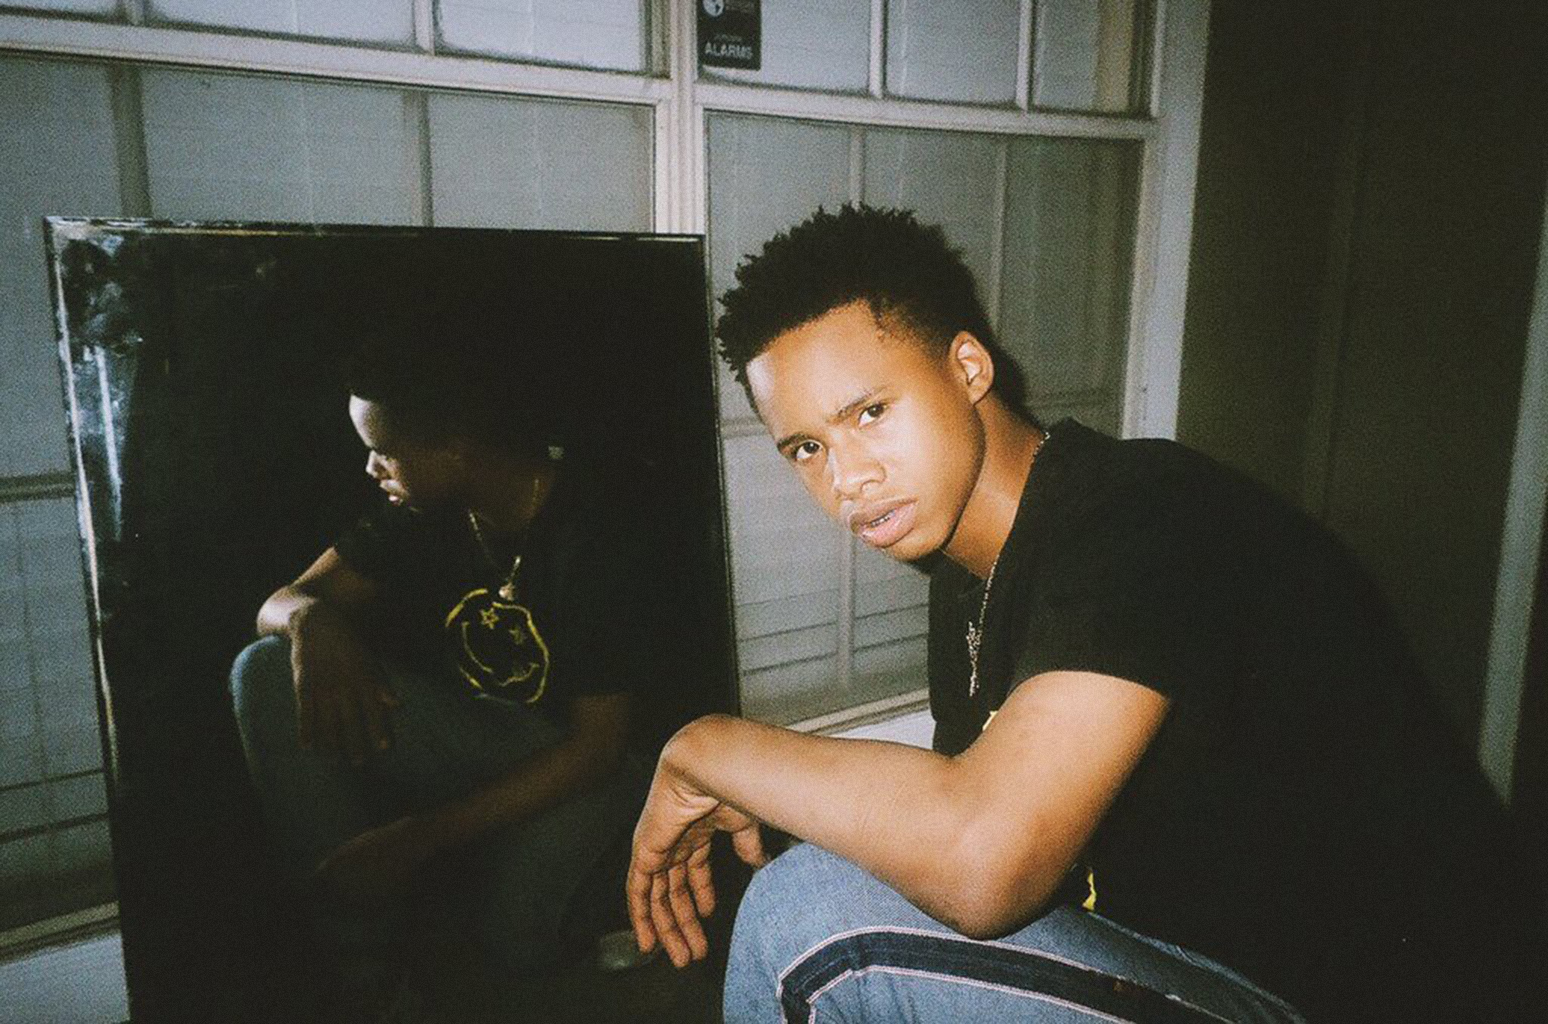 One of Tay-K Co-Defendants Will Testify Against Him